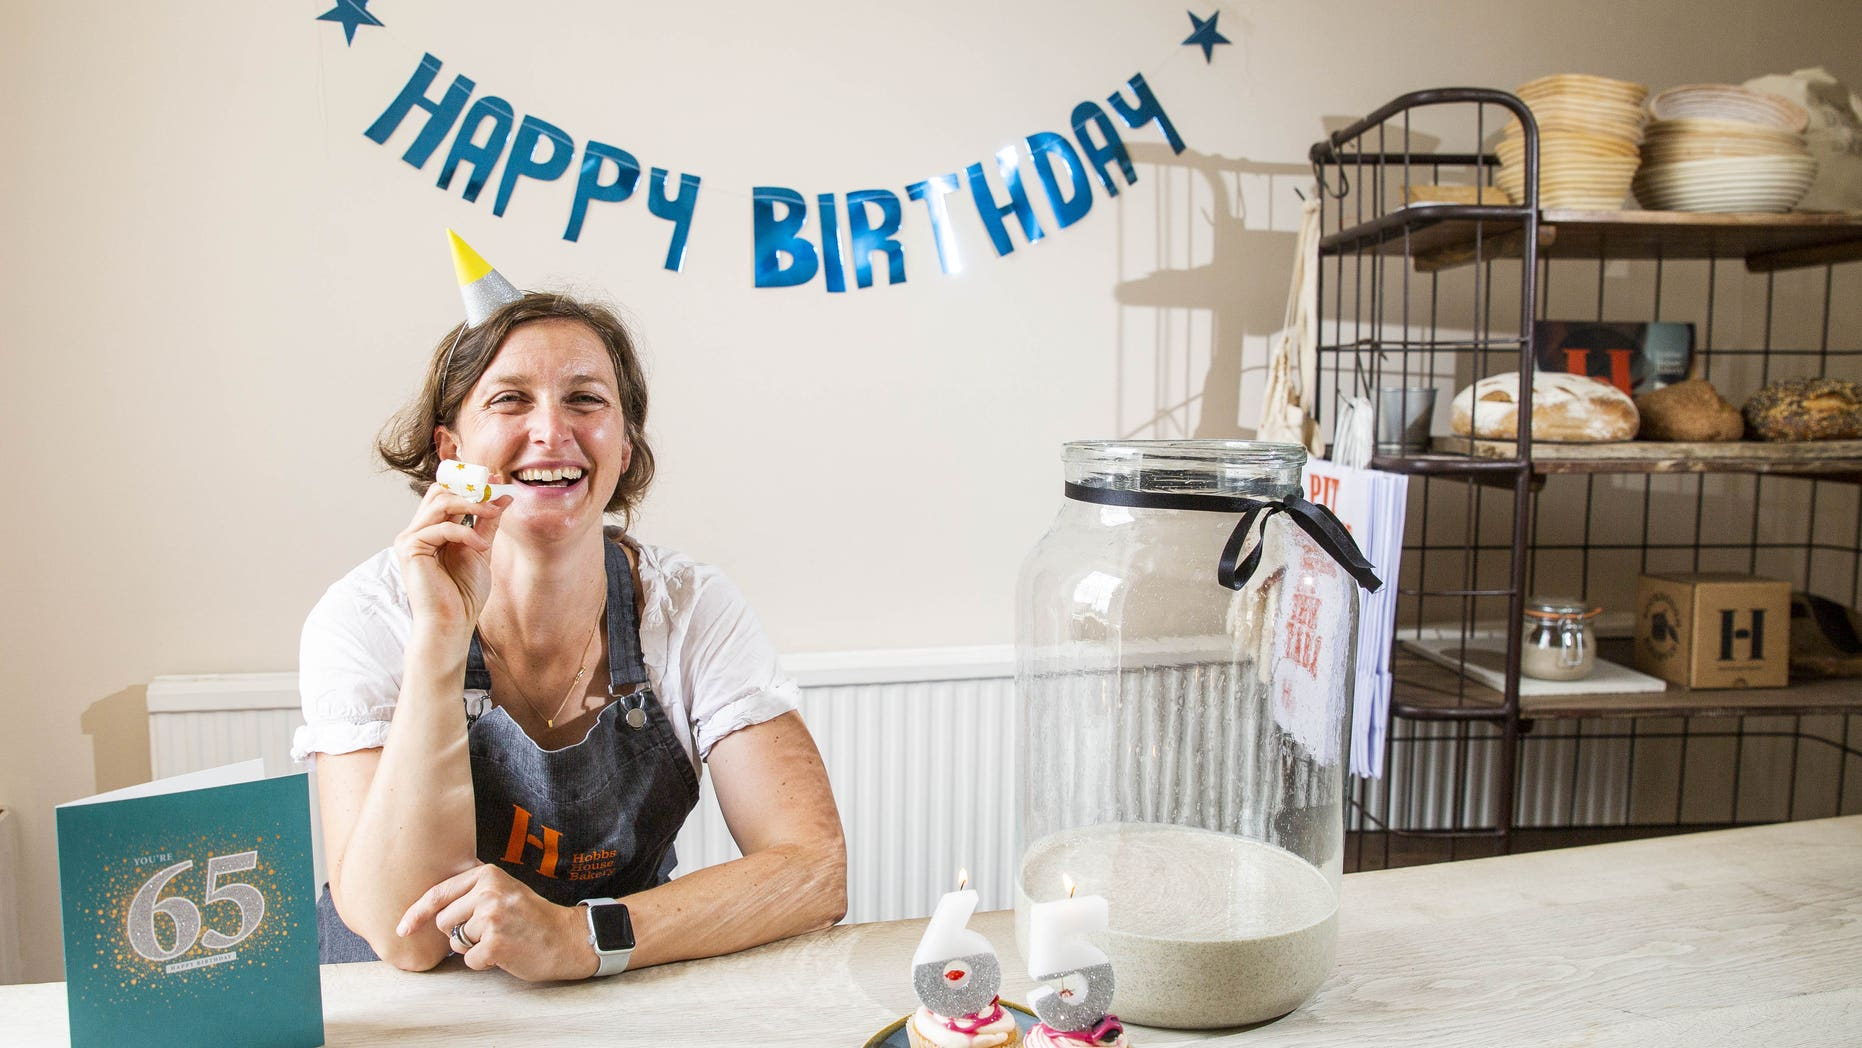 Anna Herbert at Hobbs House Bakery threw a party for their 65-year-old Sourdough starer.